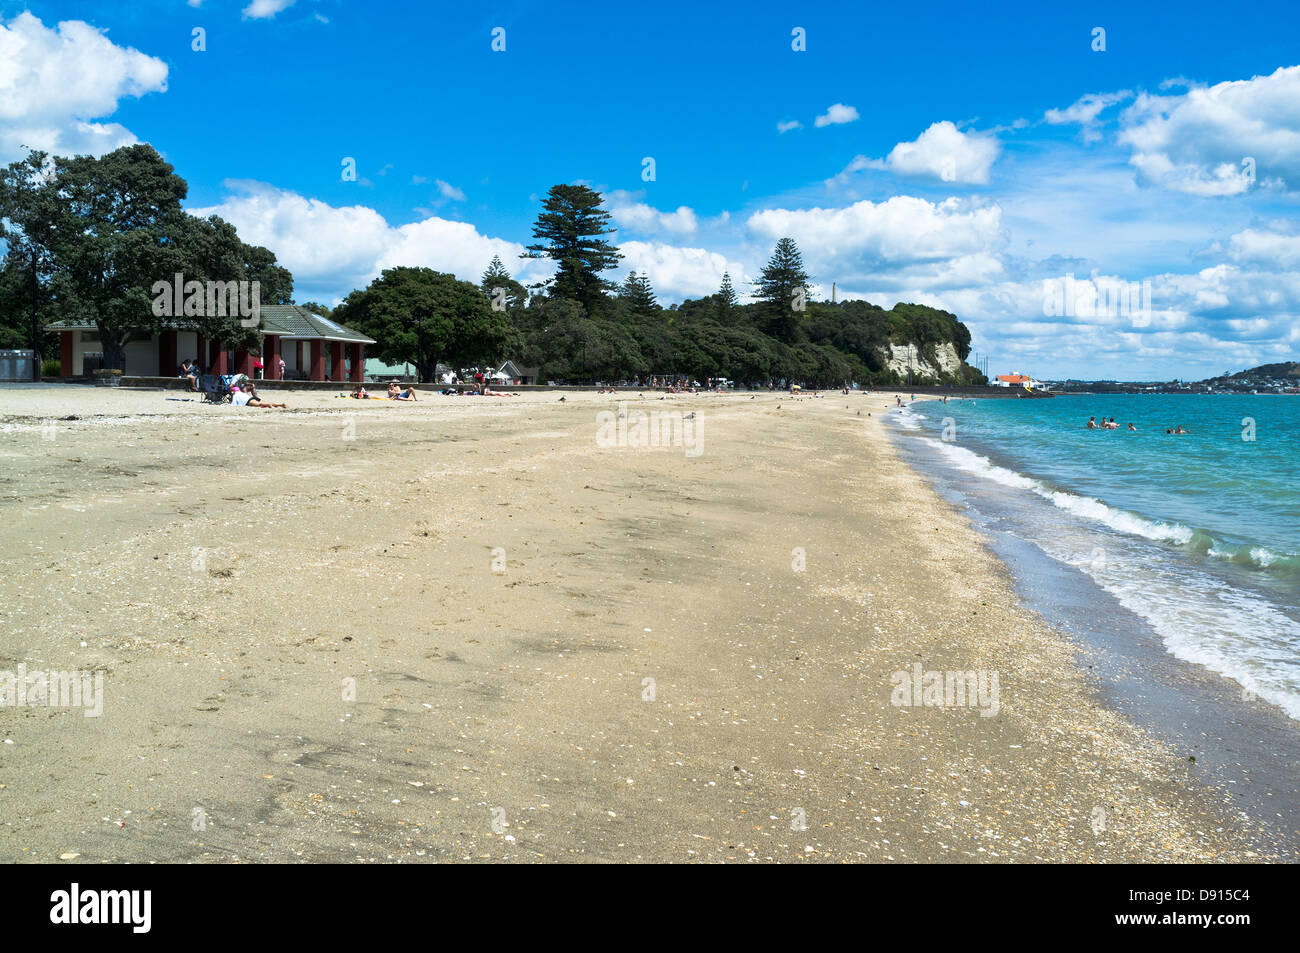 Dh mission bay beach auckland new zealand sea gull and - Mission bay swimming pool auckland ...